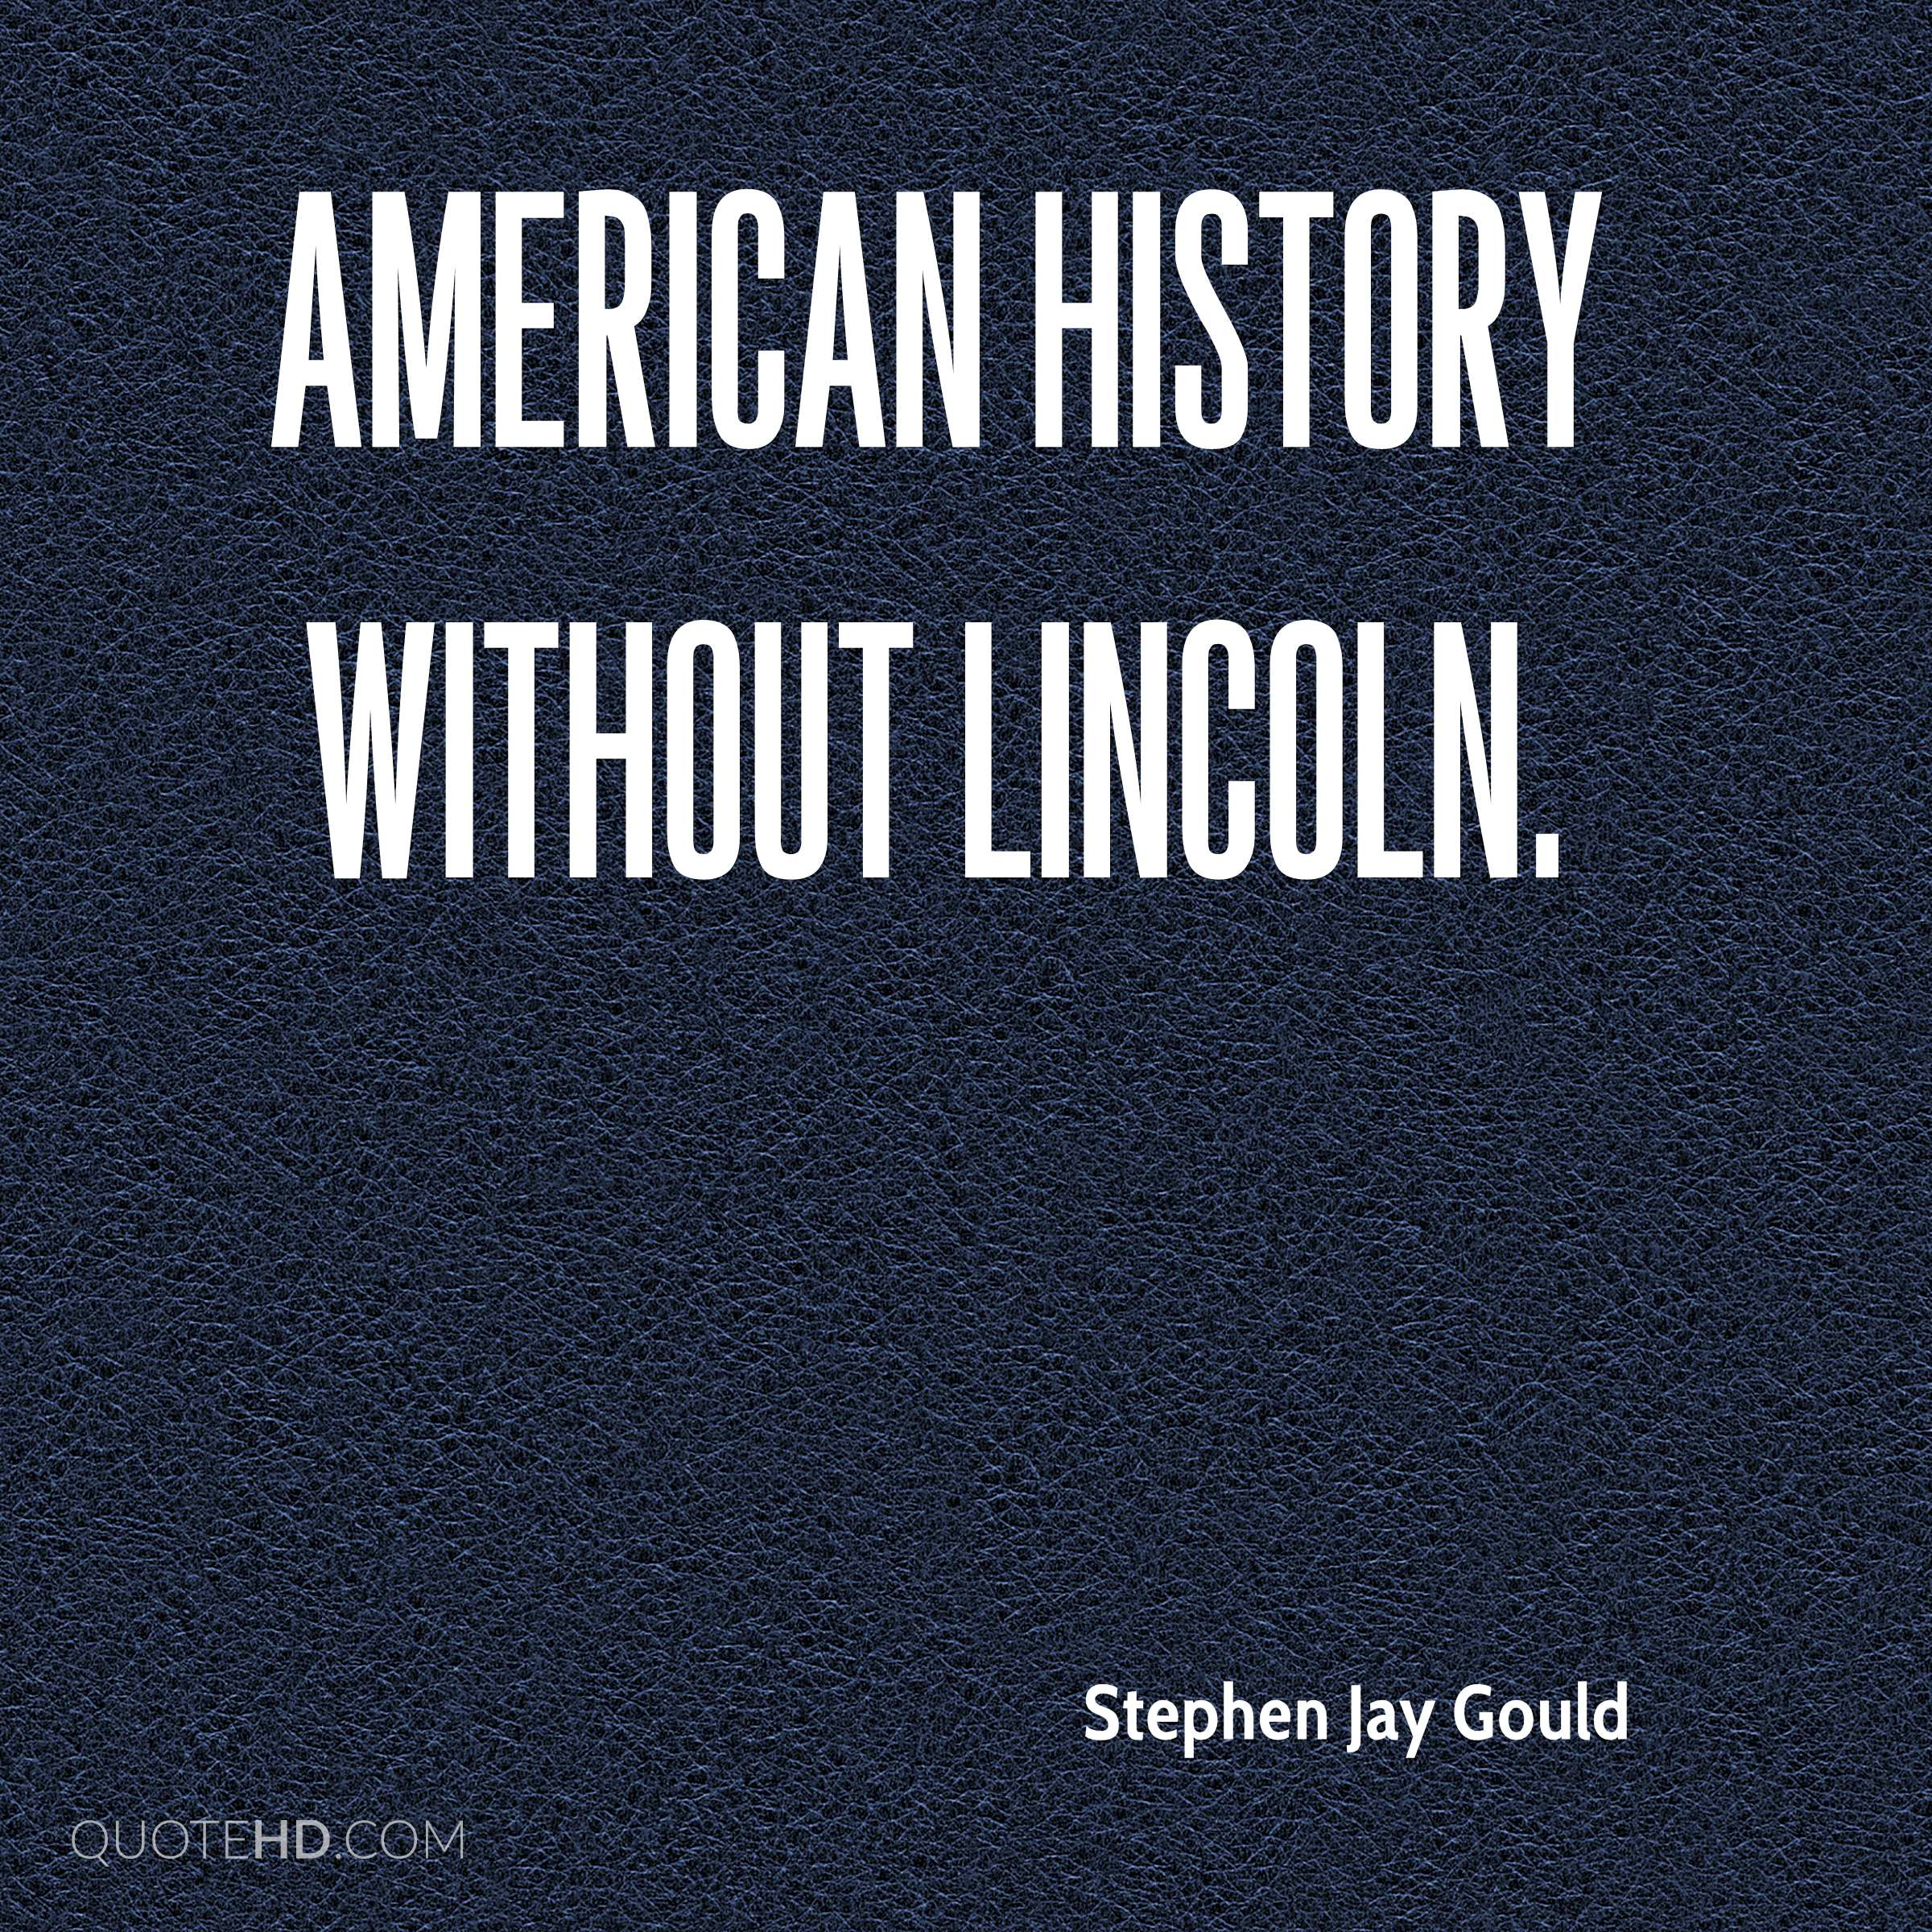 American history without Lincoln.